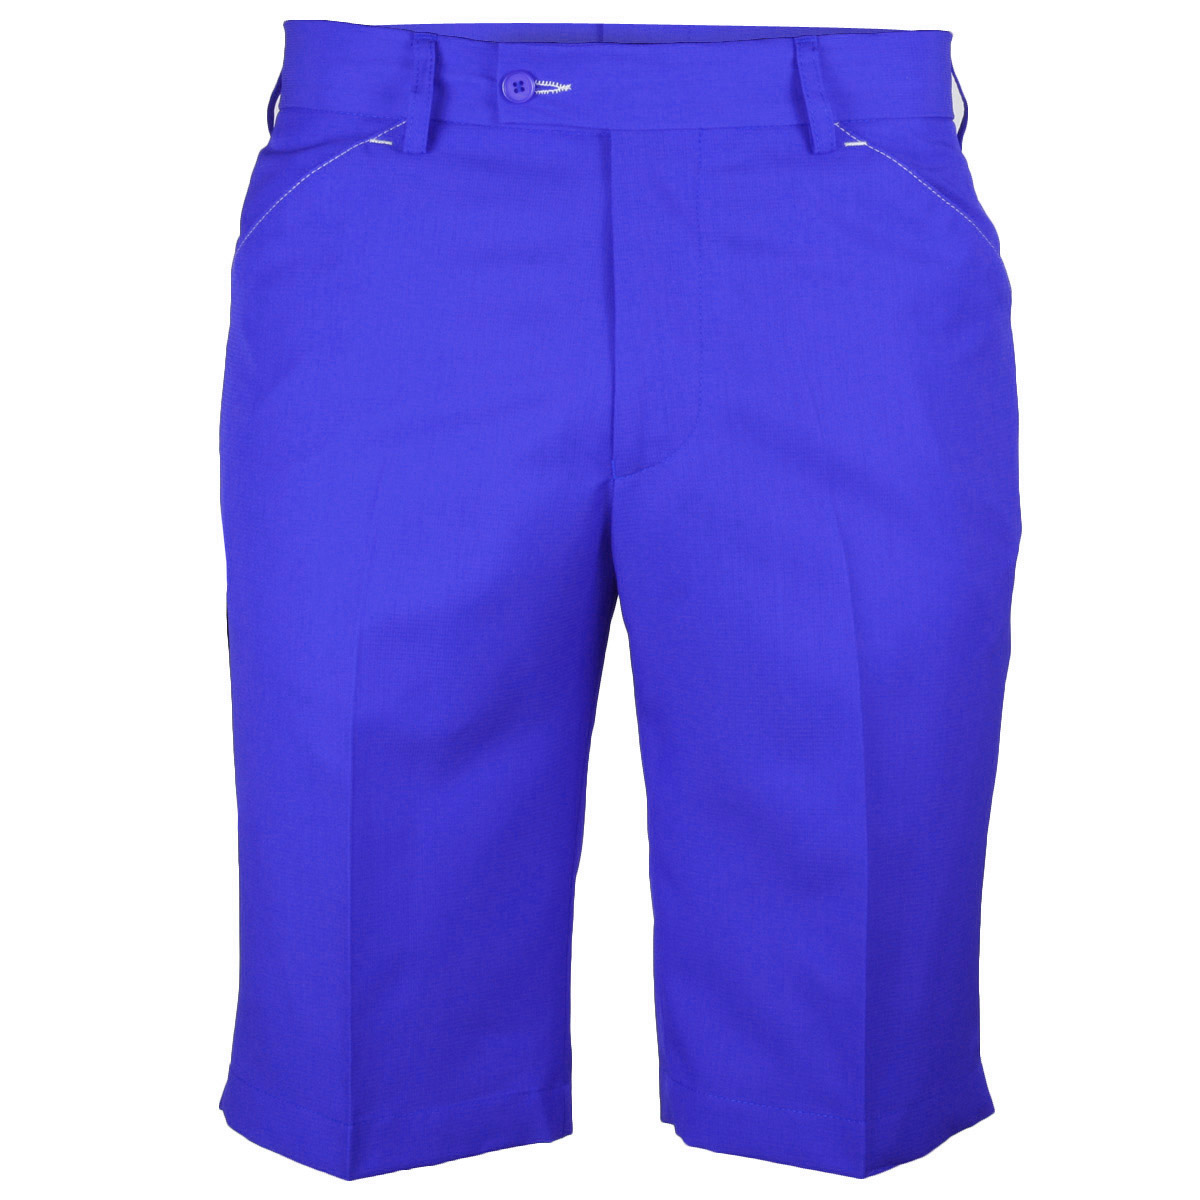 Stay cool in Haggar mens shorts. Available in a variety of fabrics and styles, including moisture wicking & cotton. Khaki shorts, cargos, or mens golf shorts are perfect for a summer day or a round of golf. Shop the full range of shorts for men. Haggar Clothing Co.